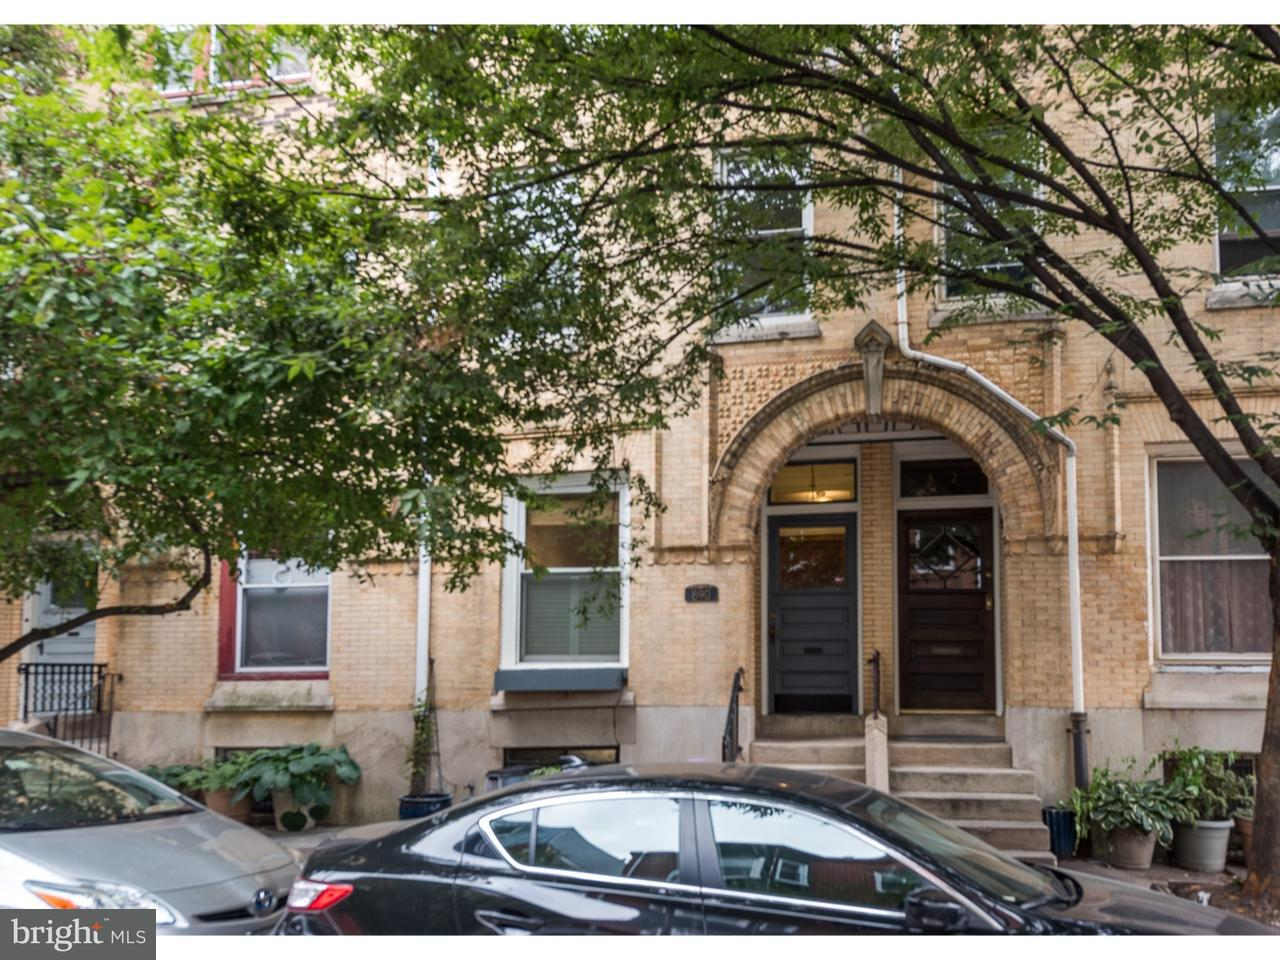 890 N 25TH Philadelphia , PA 19130